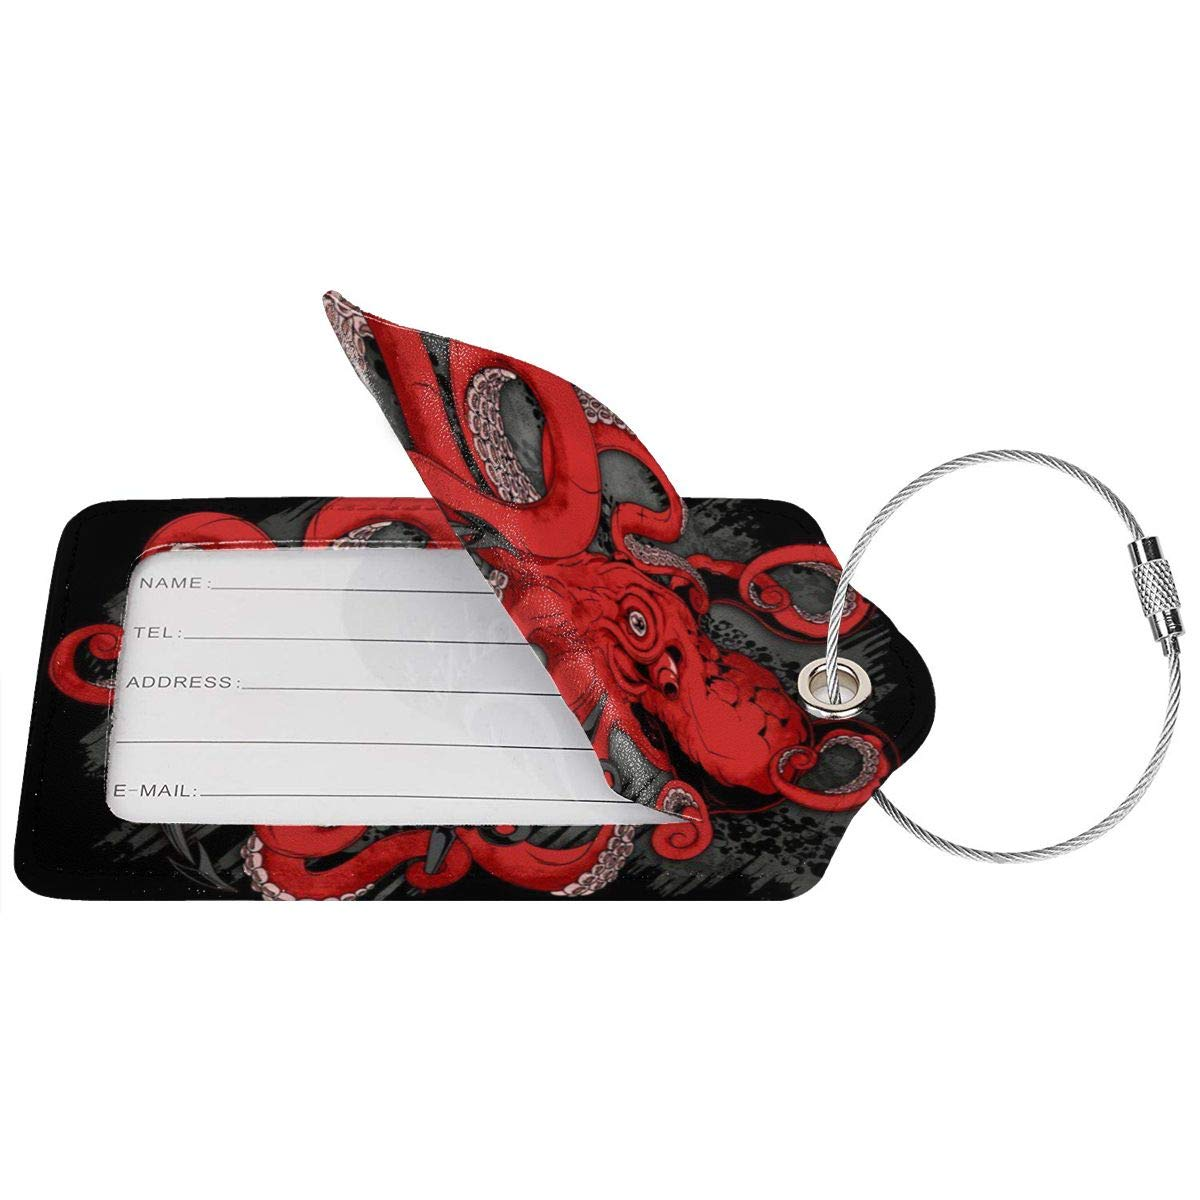 Octopus Leather Luggage Tags Suitcase Tag Travel Bag Labels With Privacy Cover For Men Women 2 Pack 4 Pack